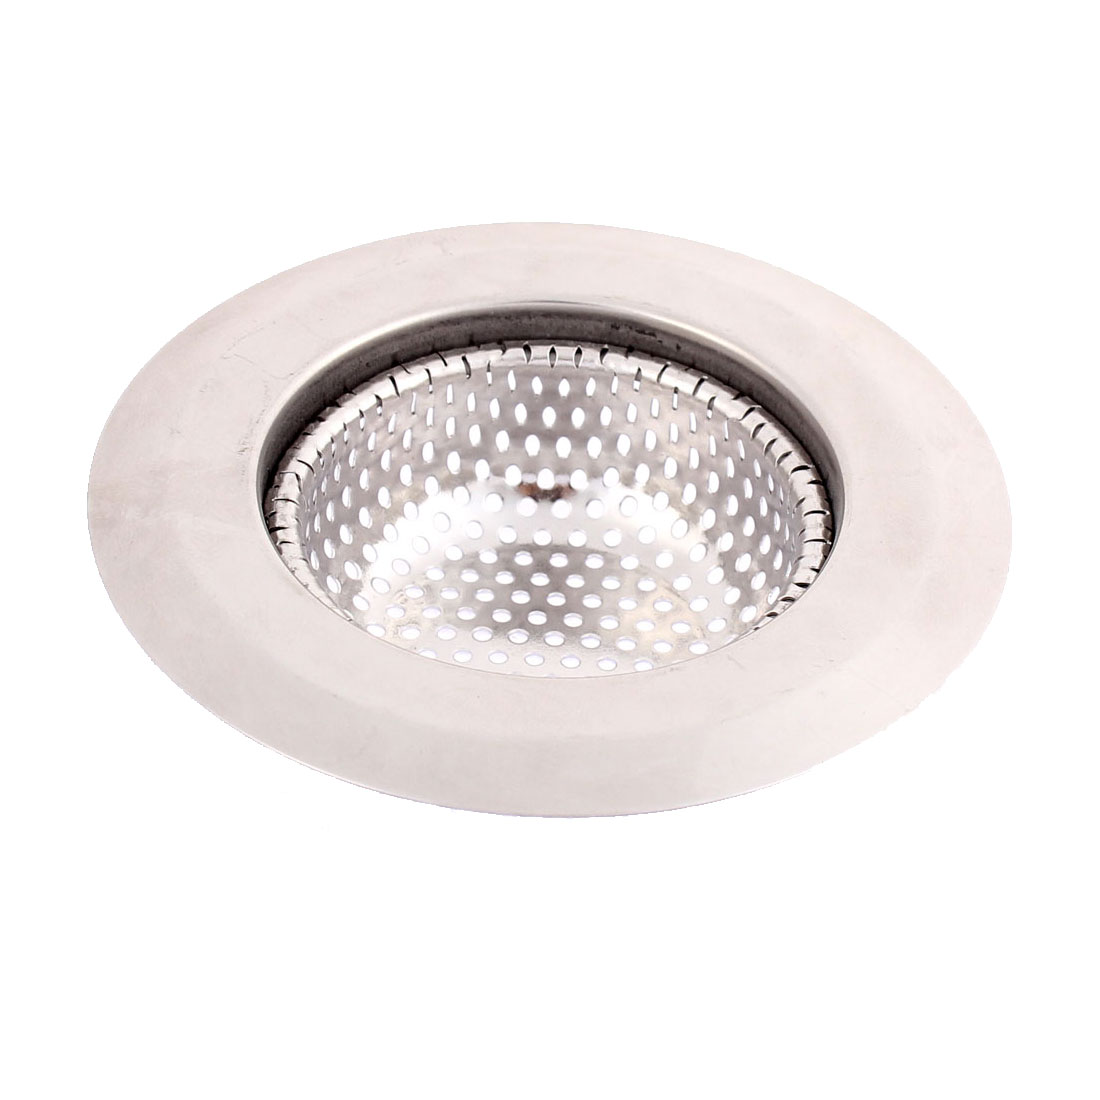 Kitchen Floor Basin Filter Mesh Sink Strainer 90mm Outer Dia